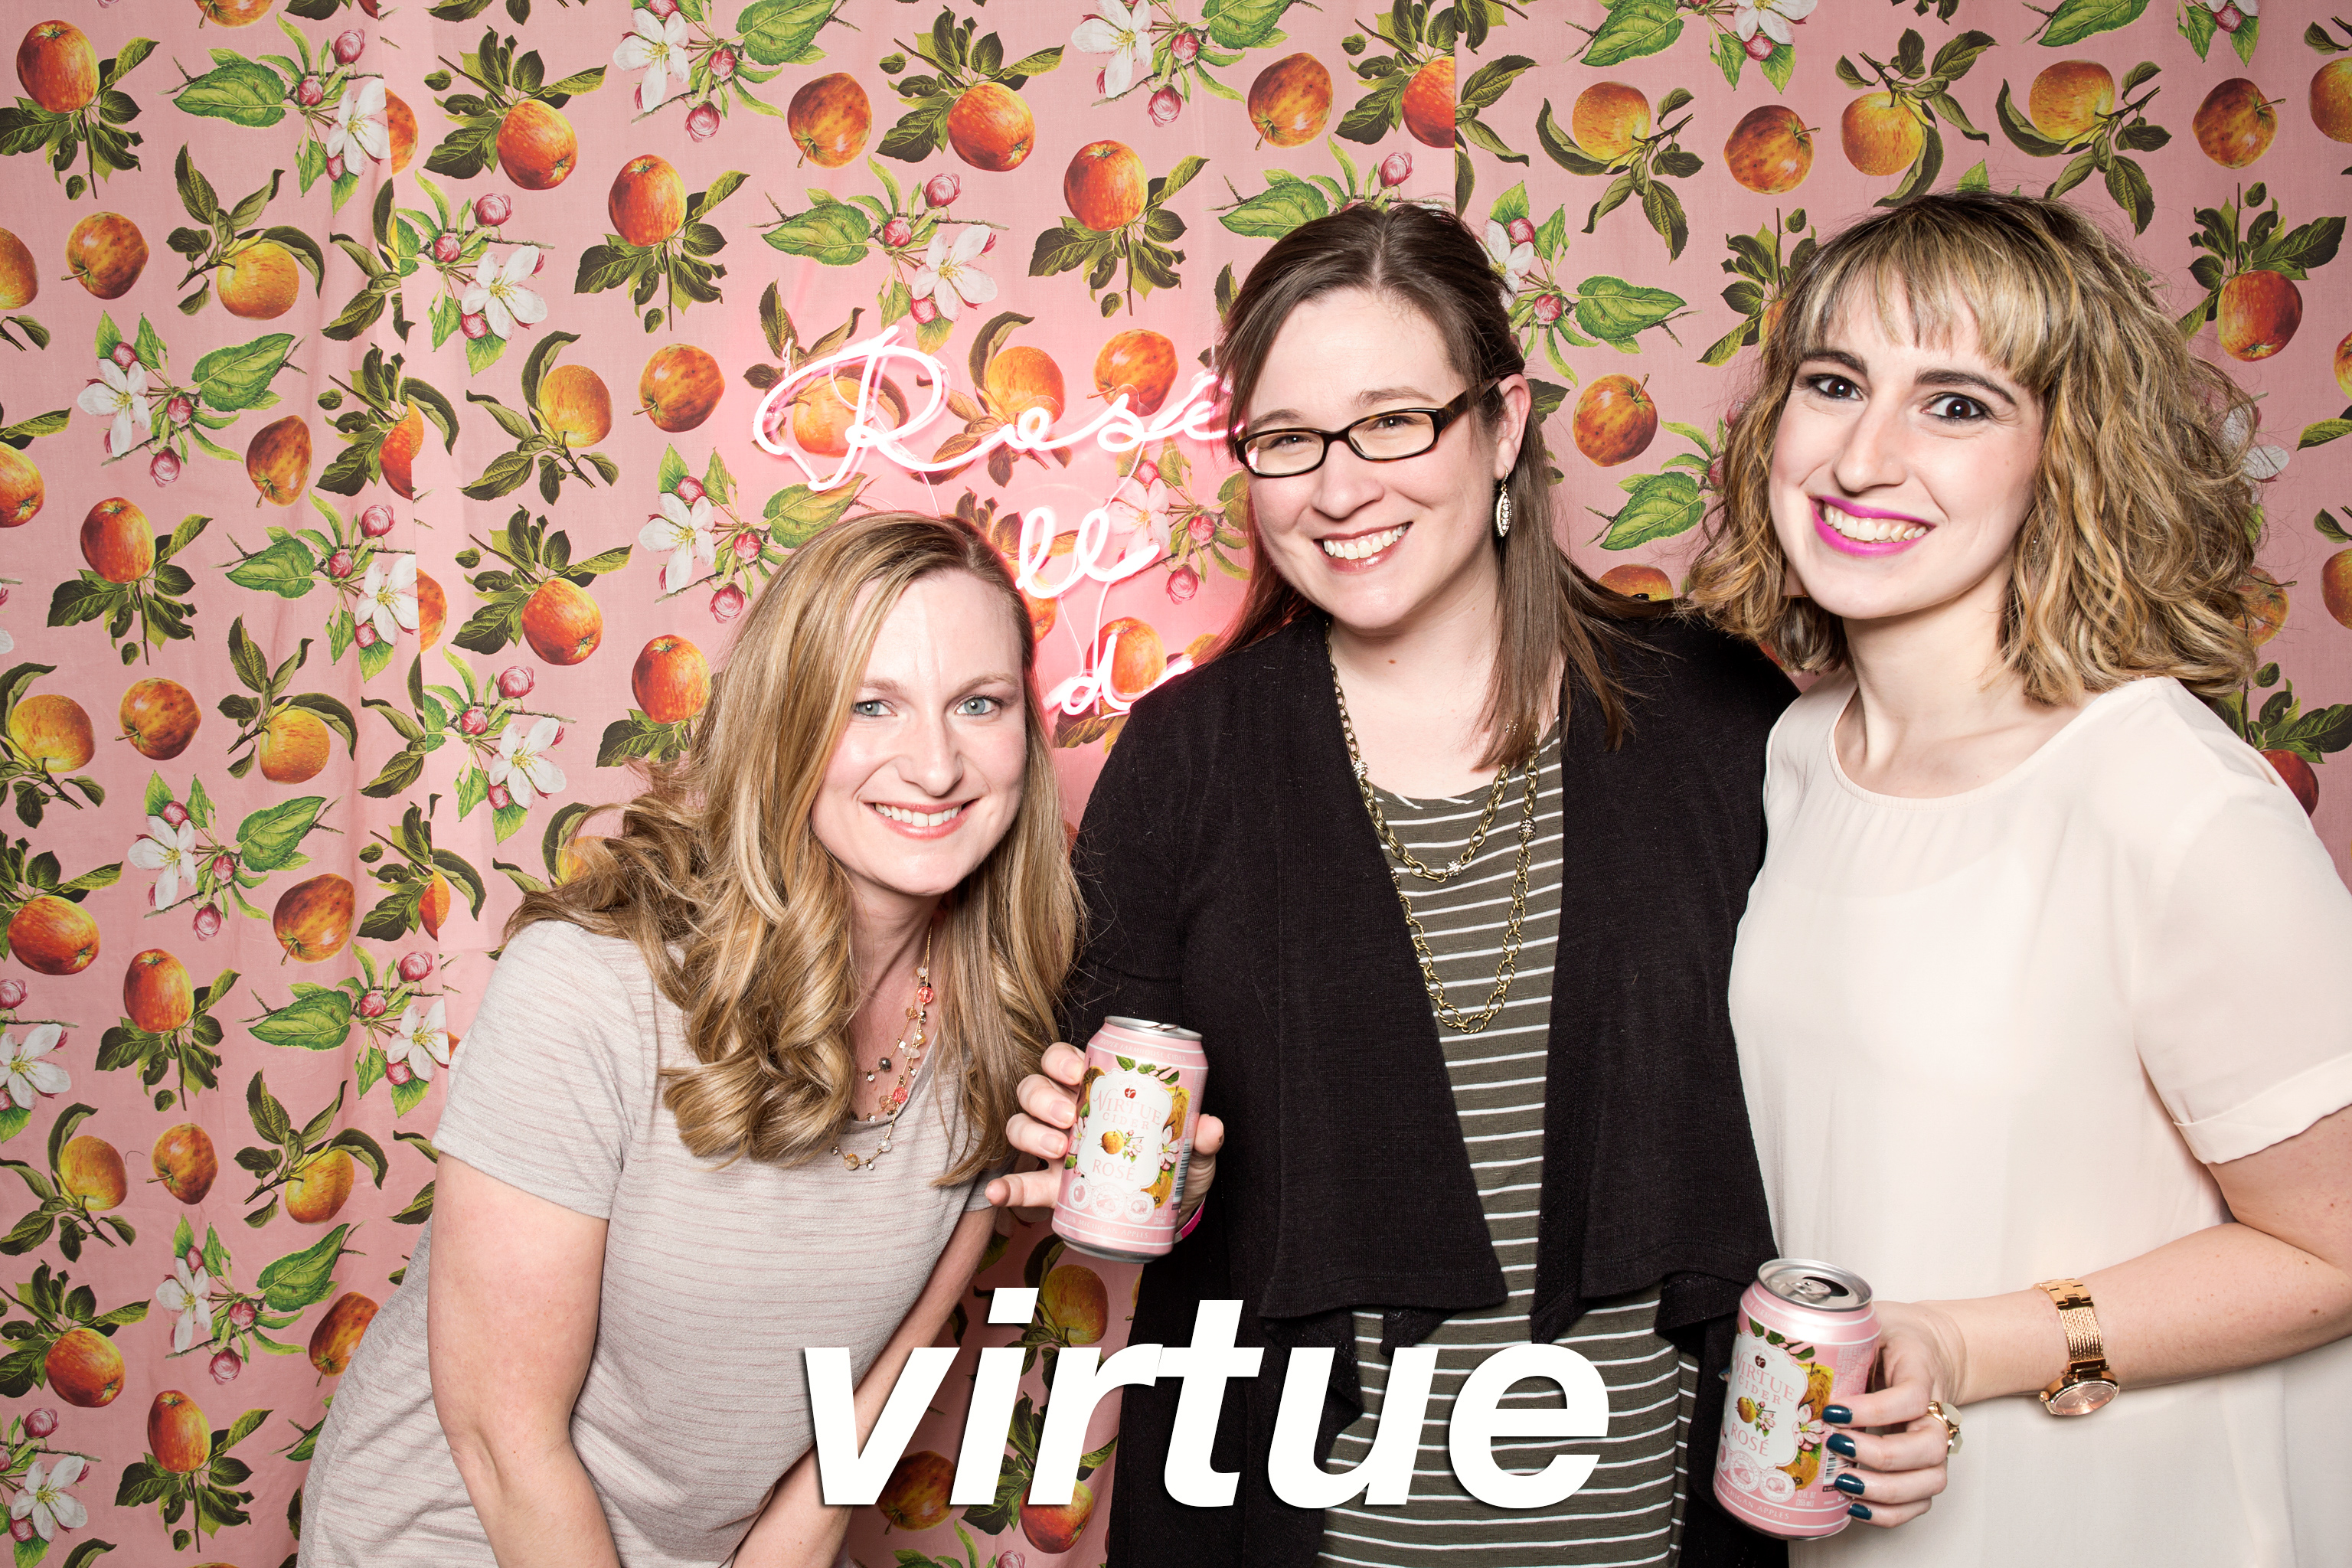 GlitterGuts Portrait Booth photos from Virture Cider's Rosé release, Chicago 2018